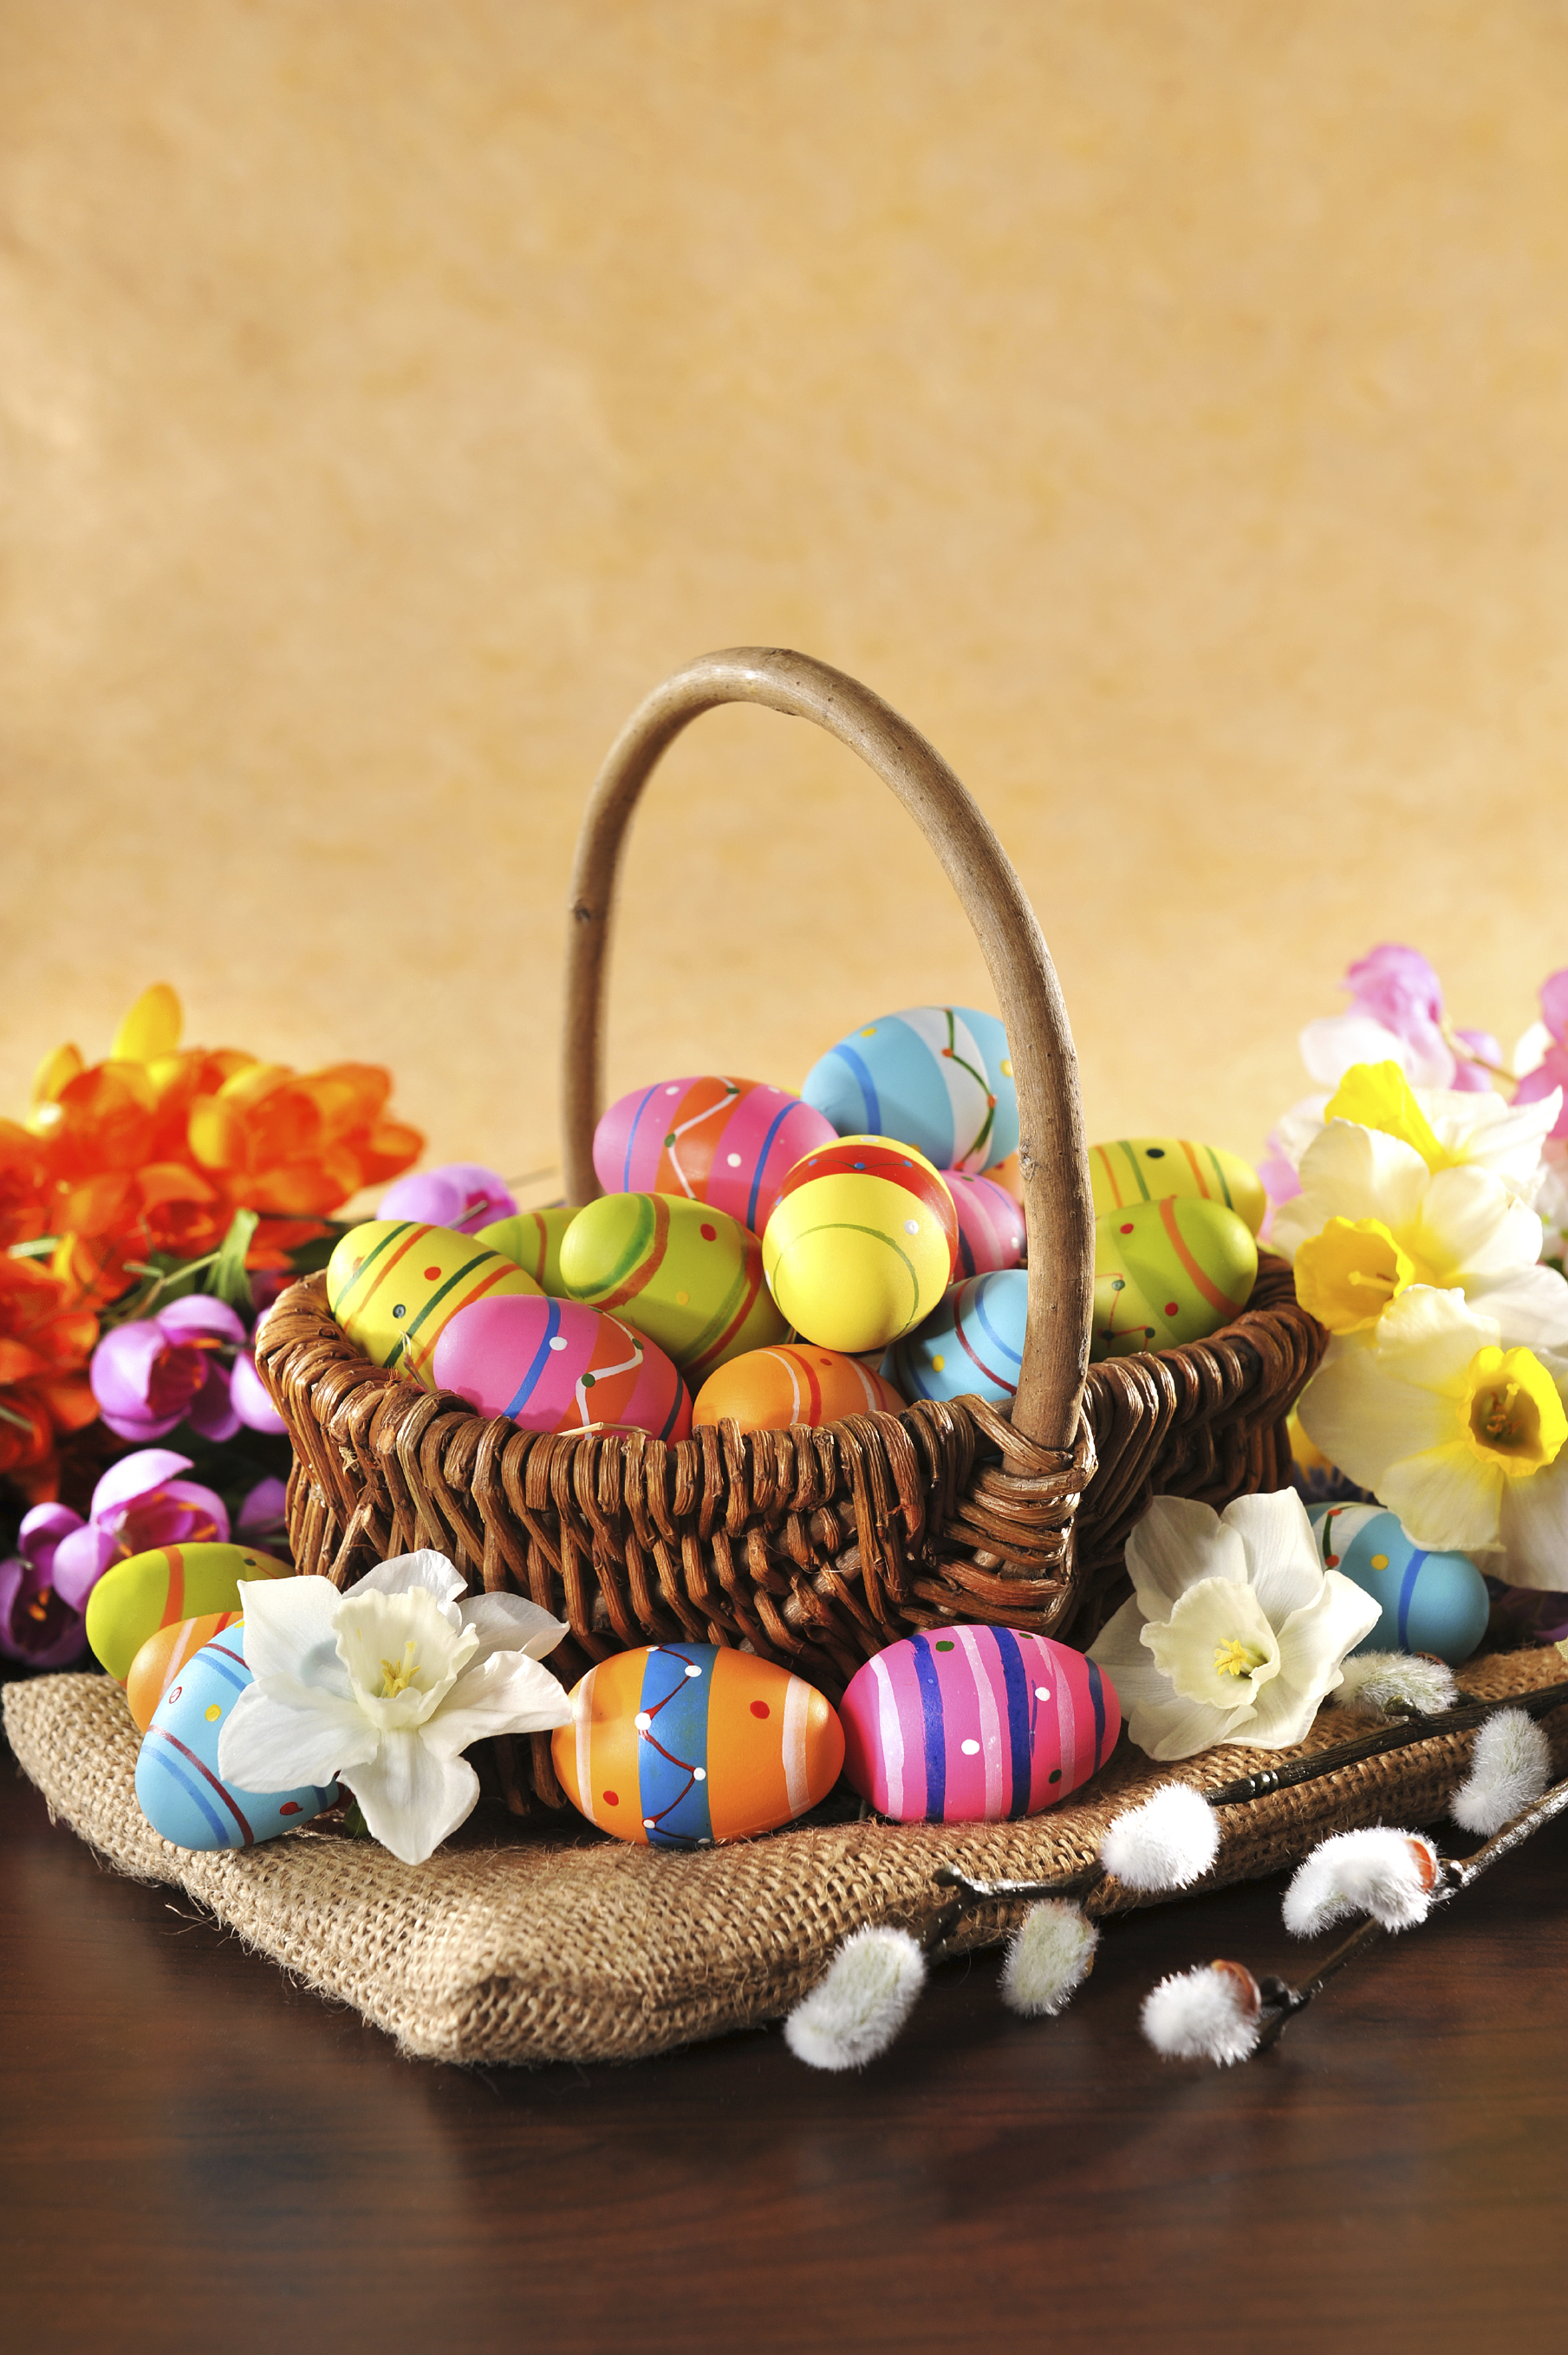 Remodelaholic | 32 Non-Candy Easter Basket Ideas